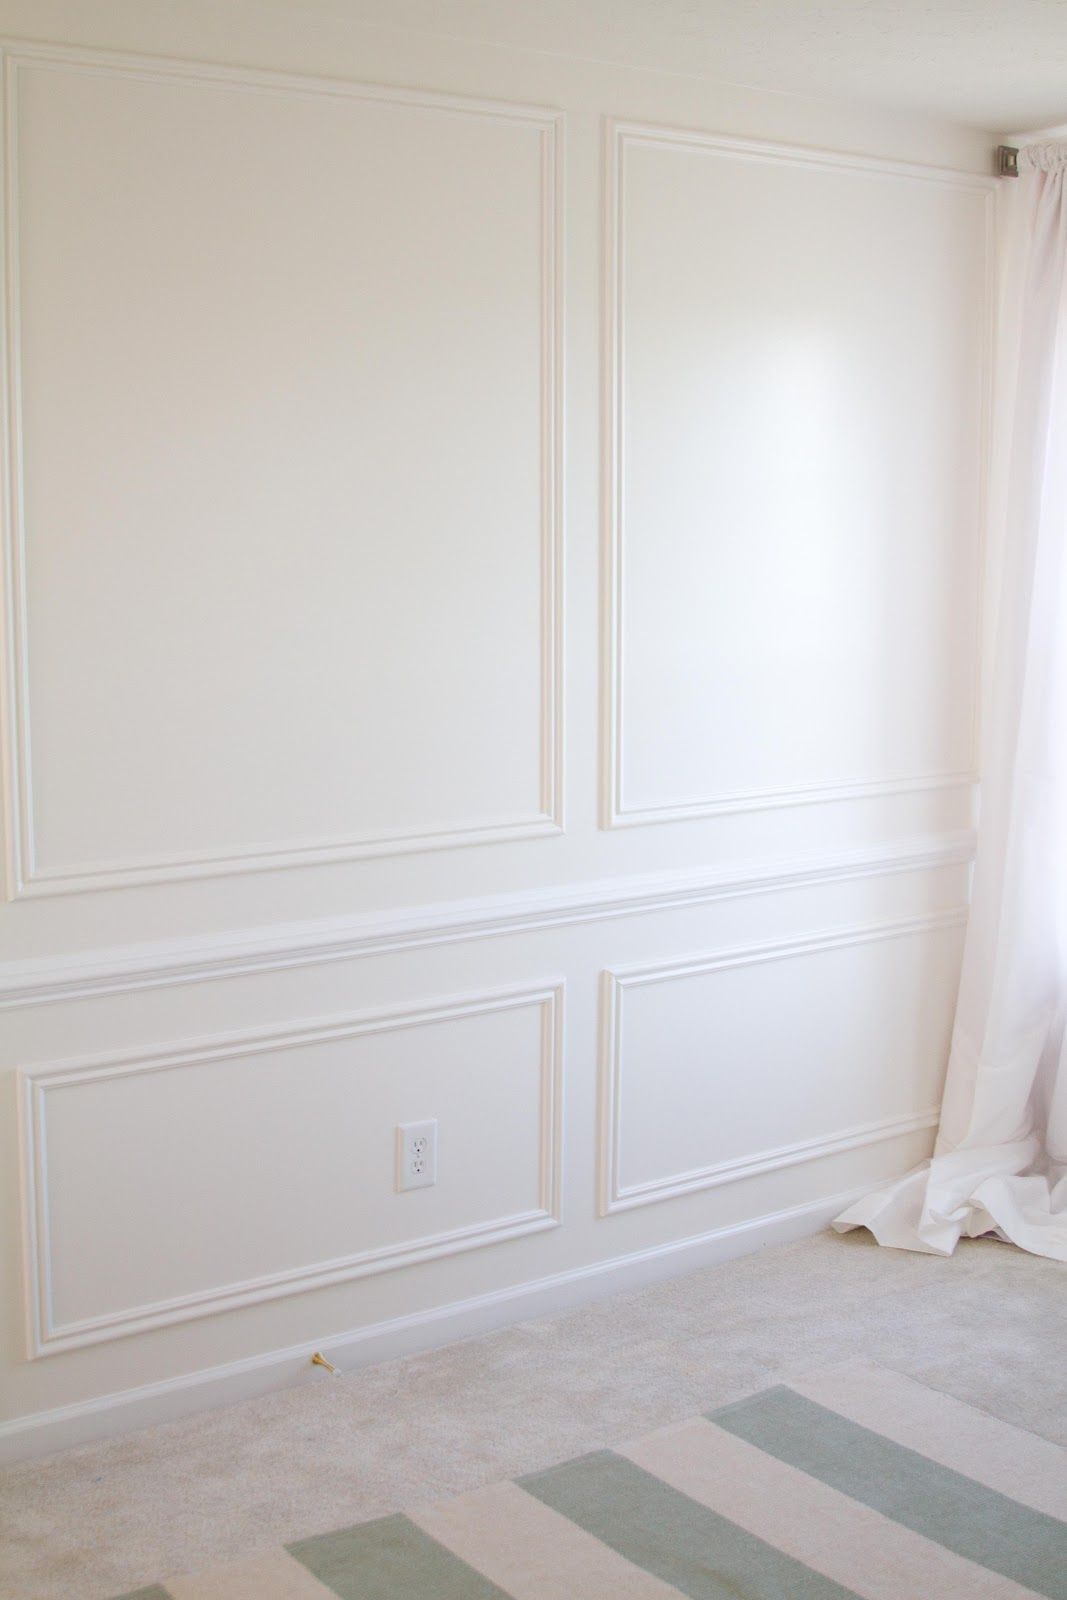 Easy wall molding ideas to dress up your walls you can do these dining room idea picture frame moulding on full wall via make it luxe jeuxipadfo Images